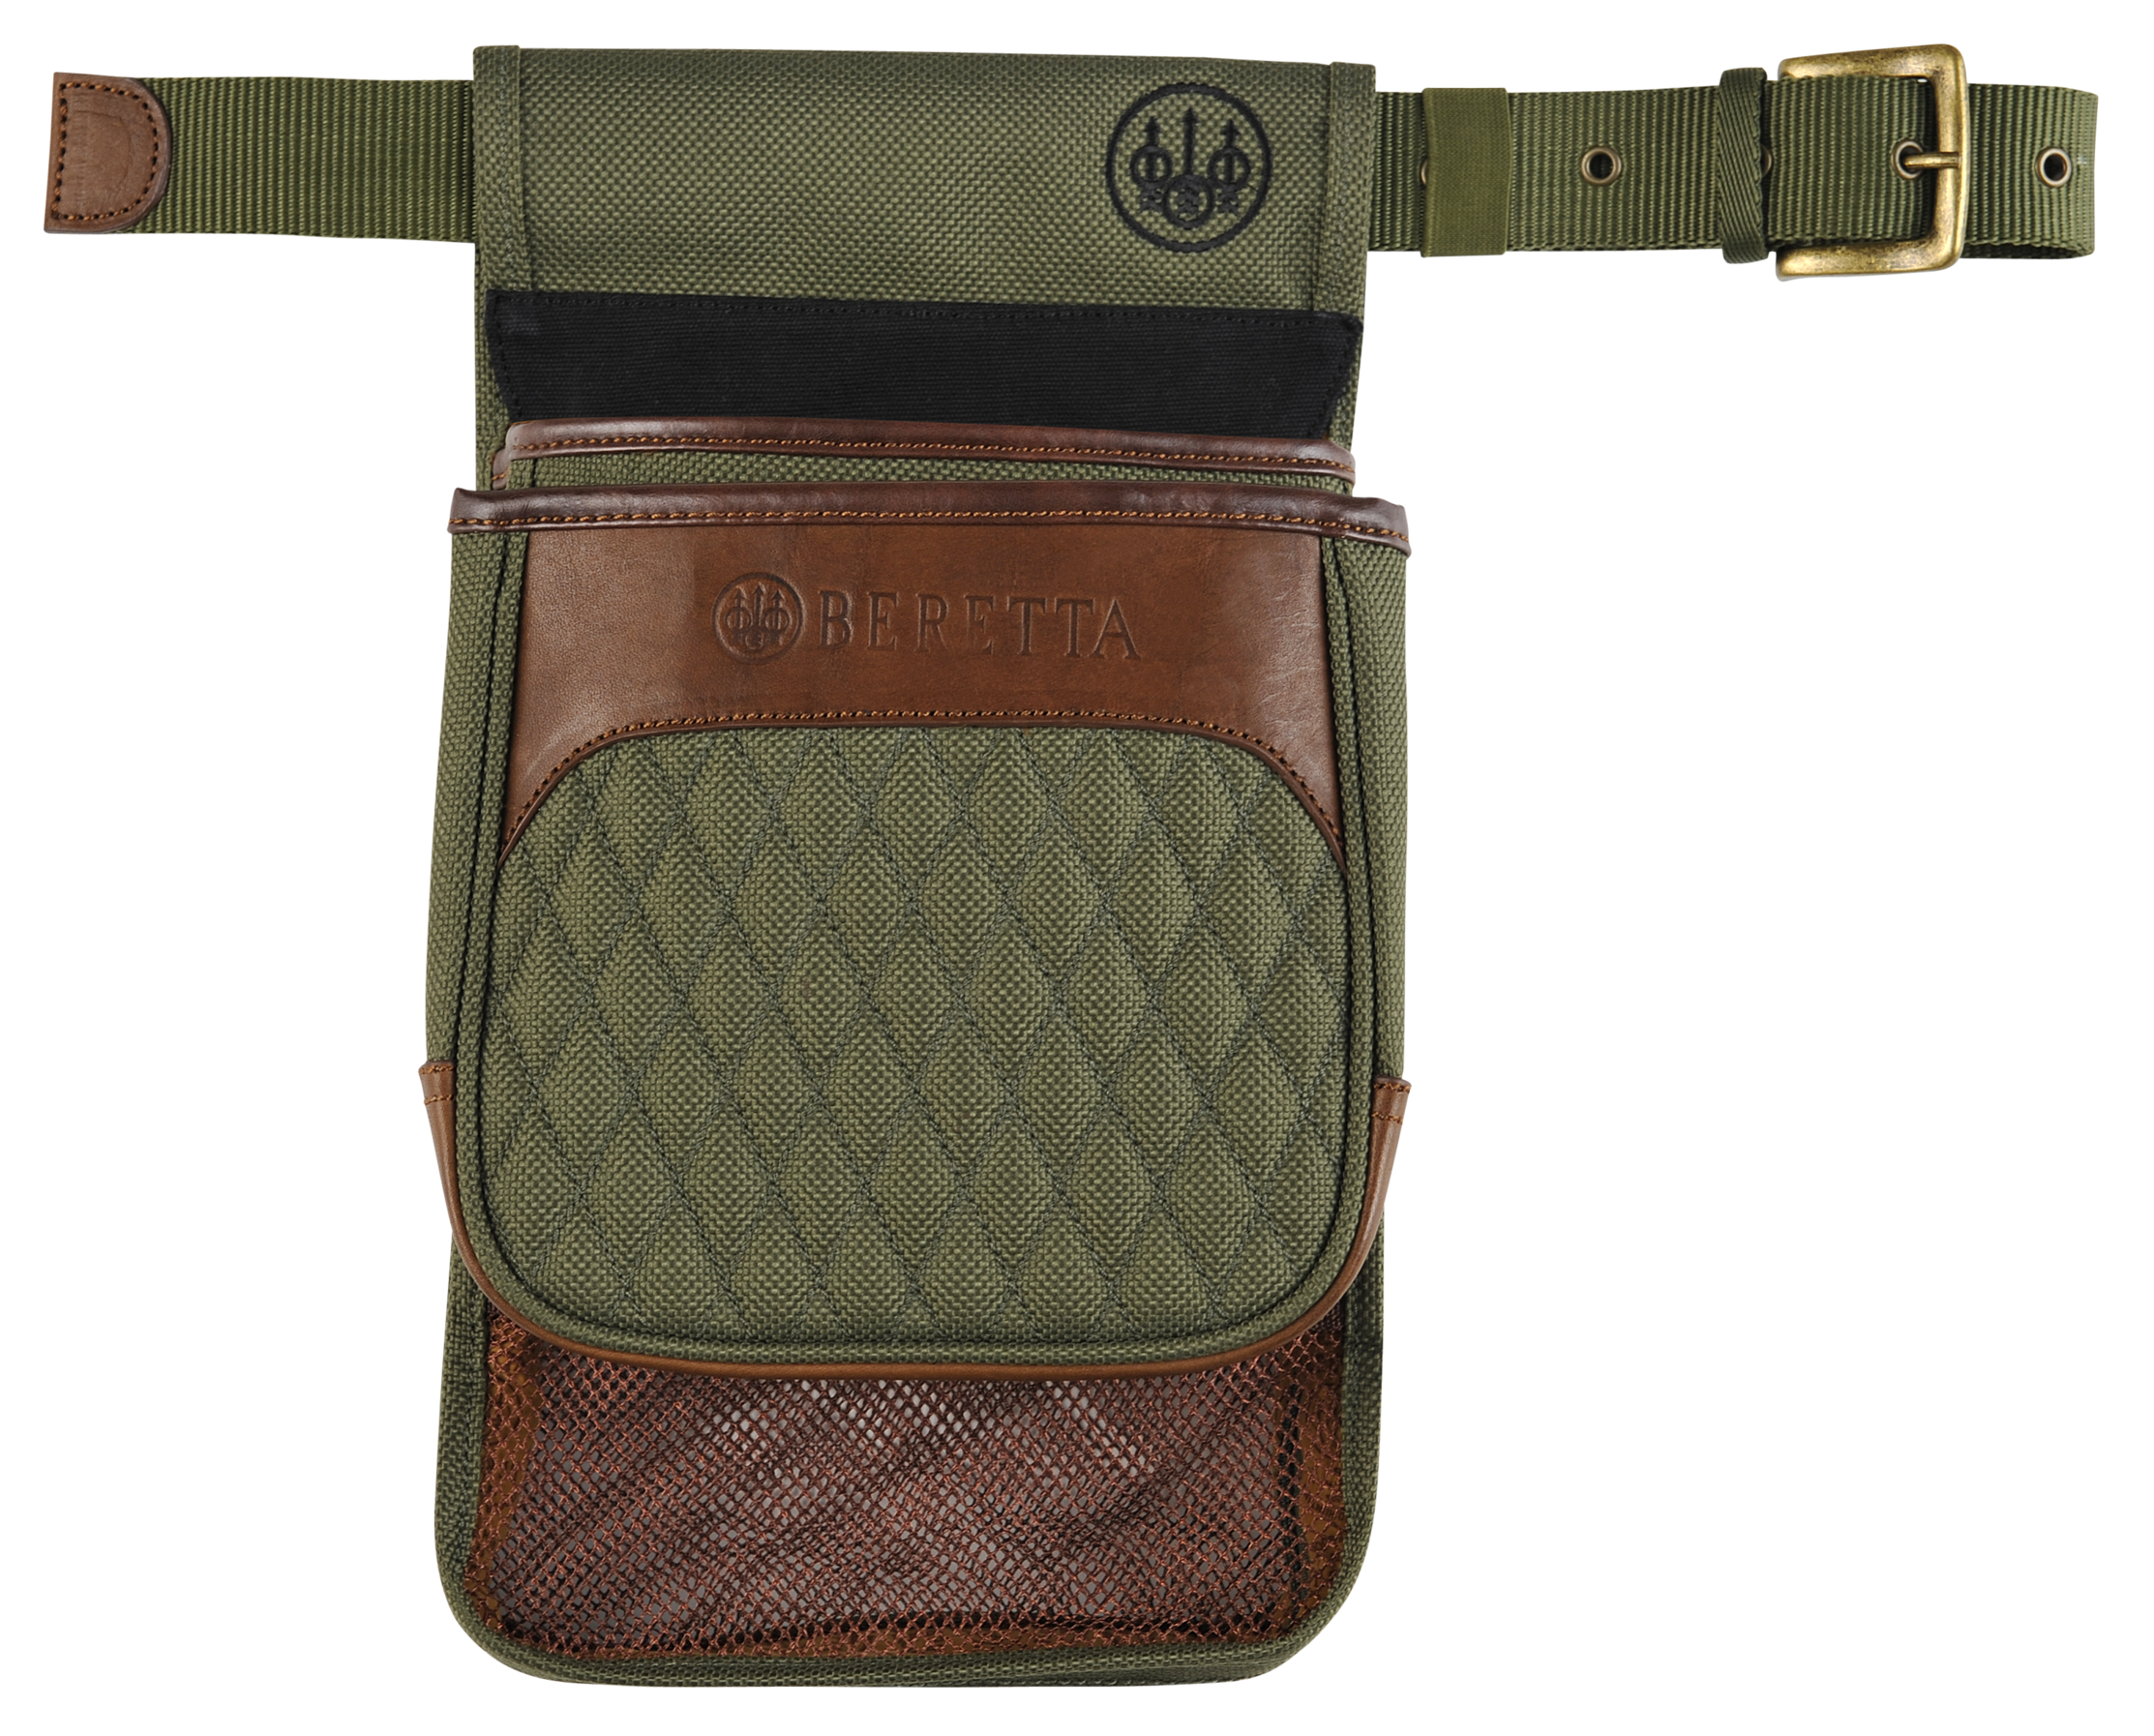 Beretta B1 Signature Shell & Hull Pouch - Canvas/Leather - Green